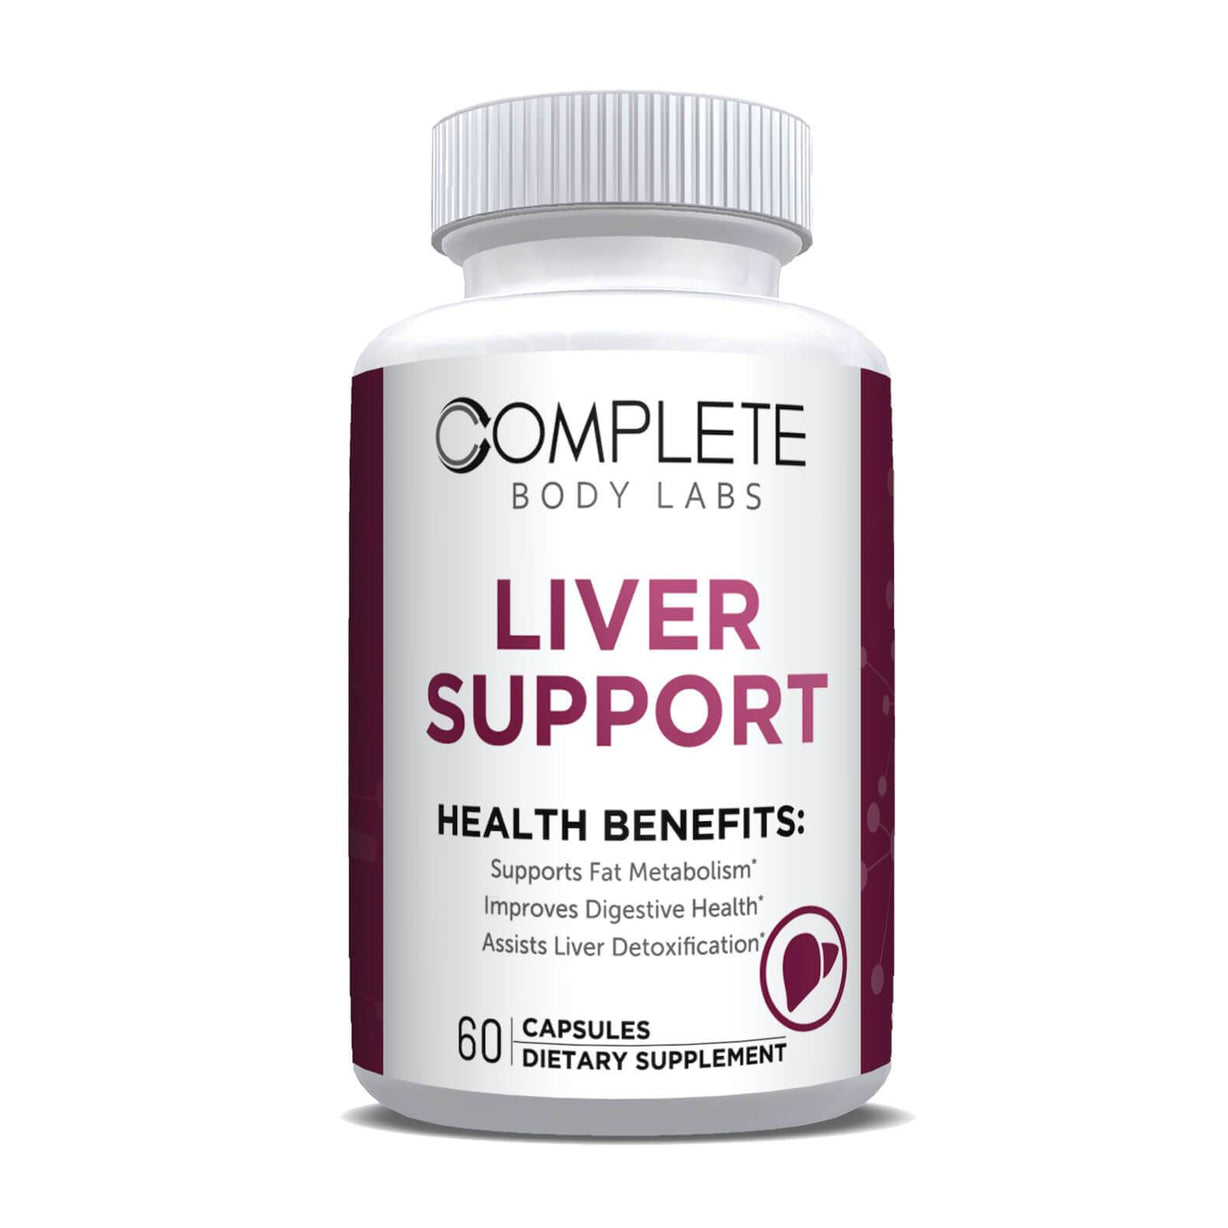 LIVER SUPPORT Complete Body Labs | Probiotics, Nootropics, Brain Supplements, Protein Bars, Workout Supplements, Health Supplements, Omega-3 & Essential Vitamins For Men & Women